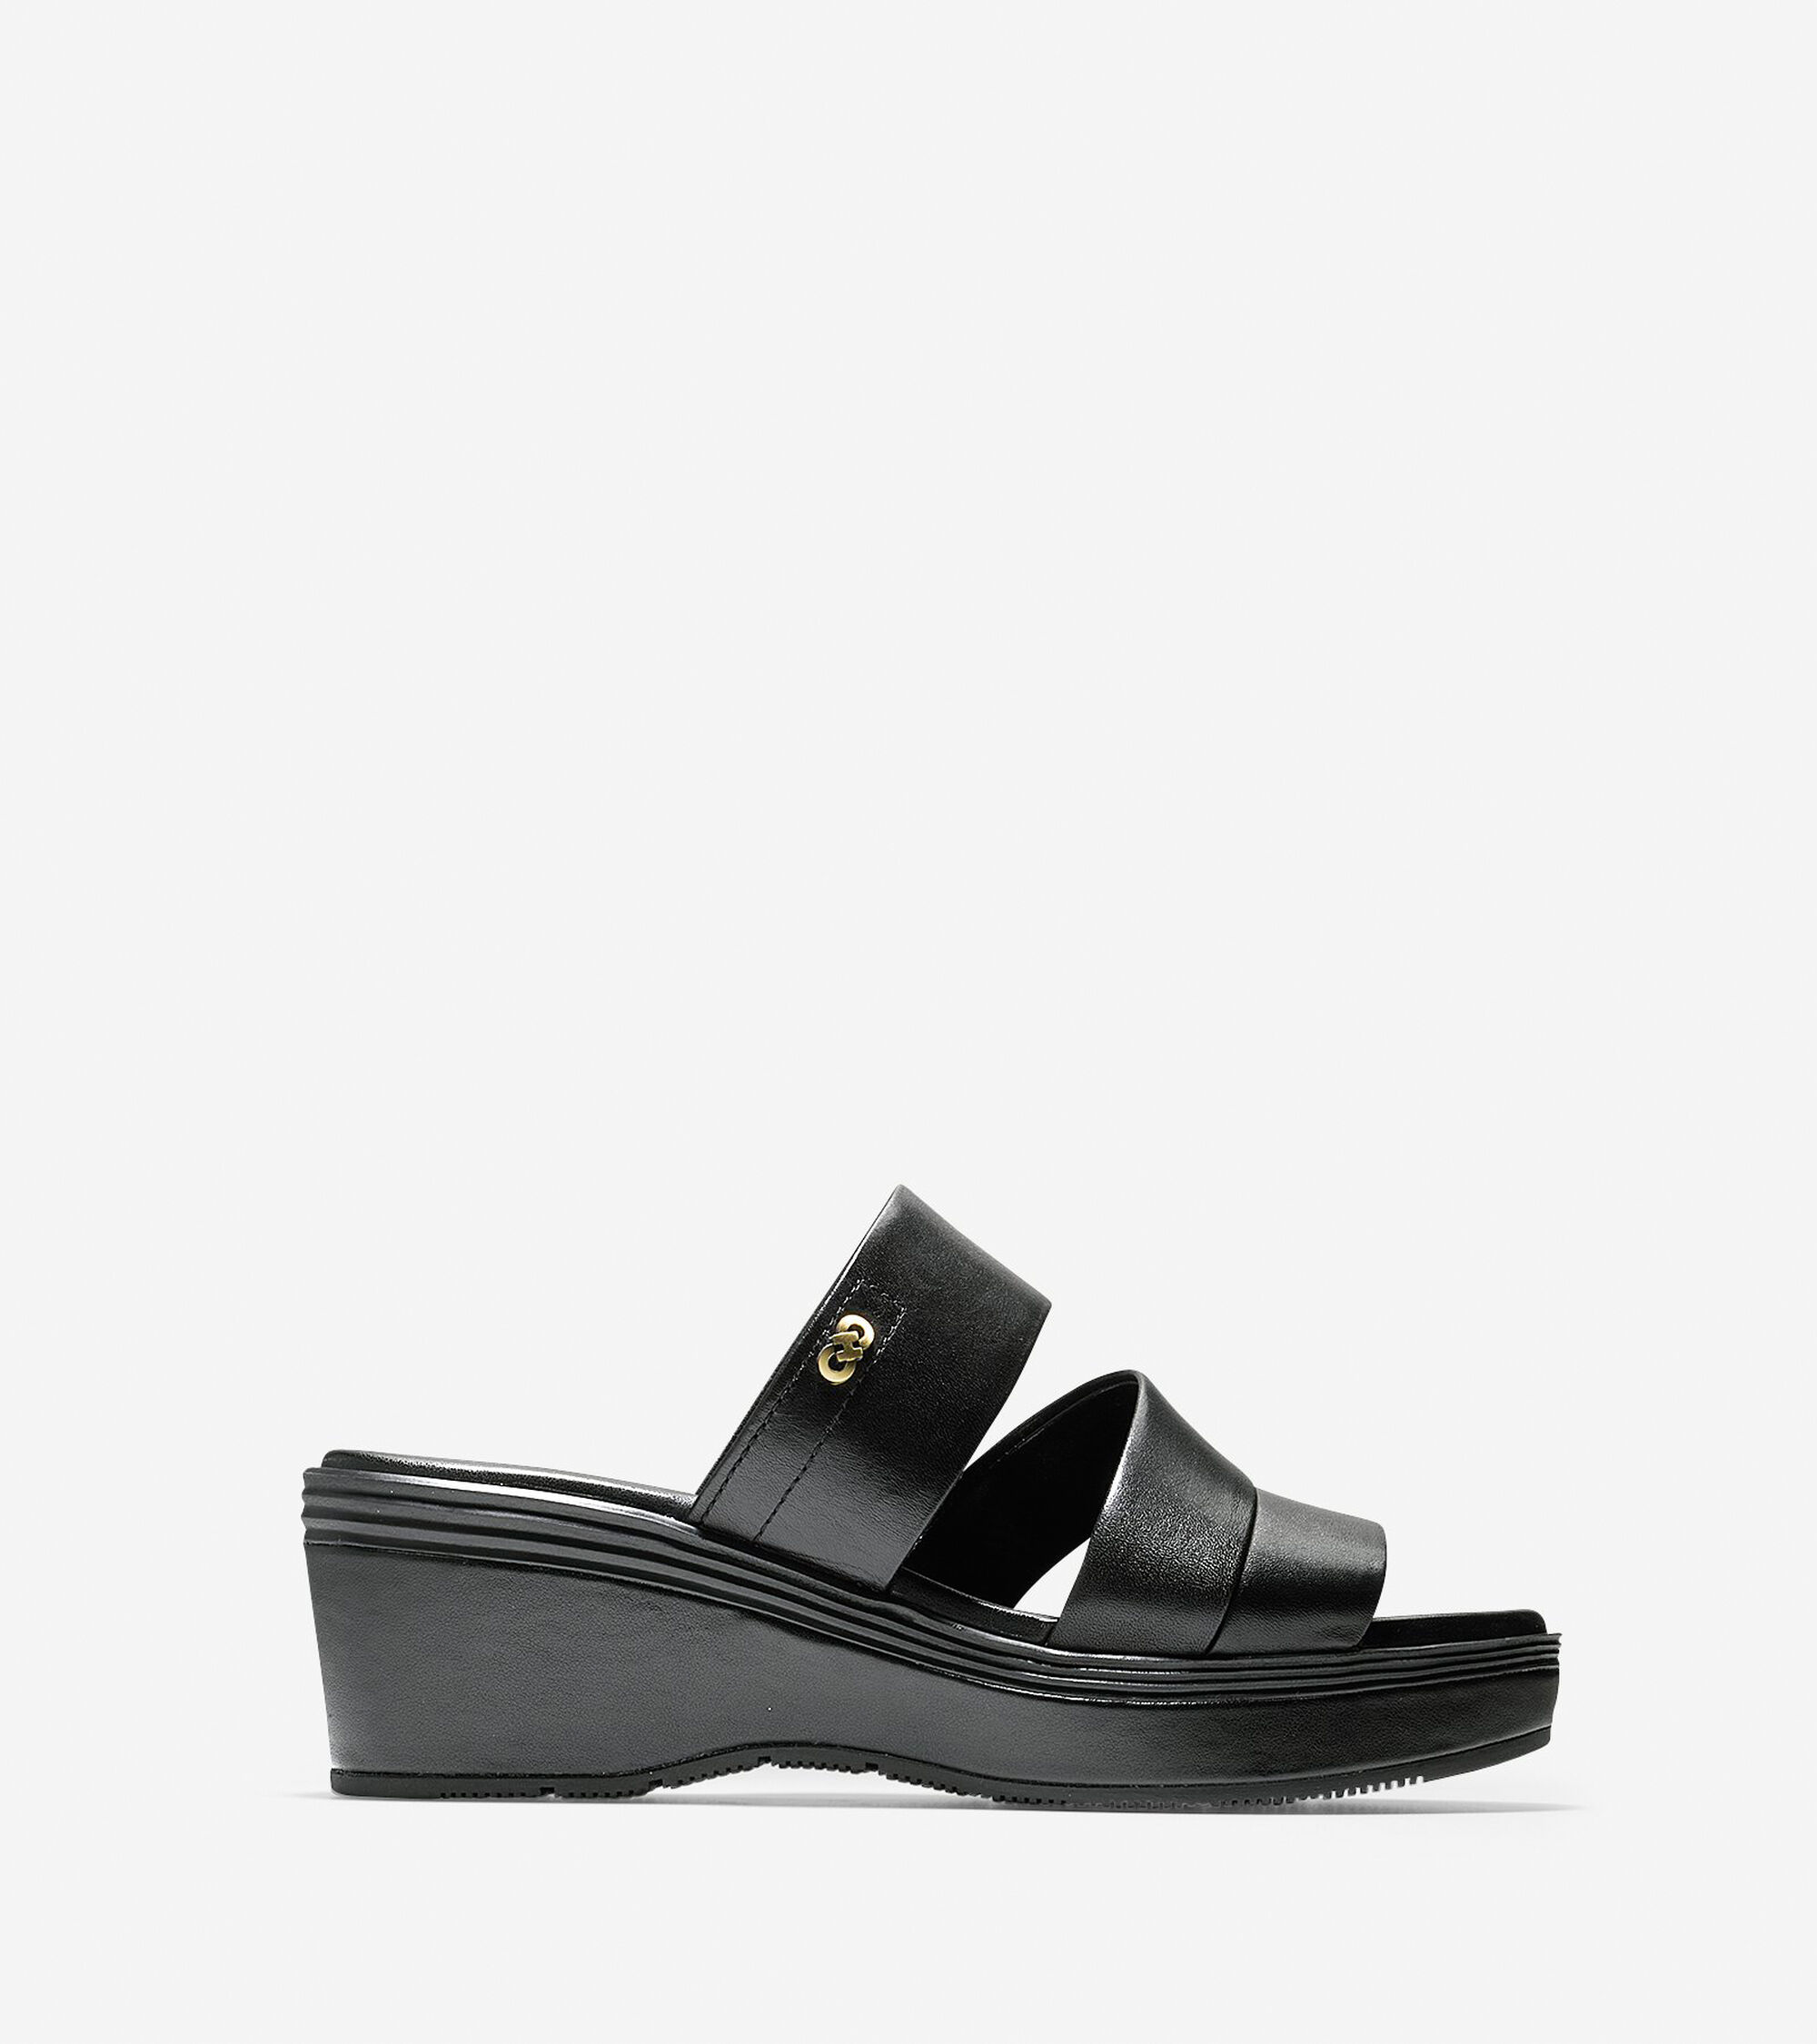 d24b834a0d85 Cole Haan Allesa Grand Wedge Sandal (55mm) in Black Leather   ColeHaan.com